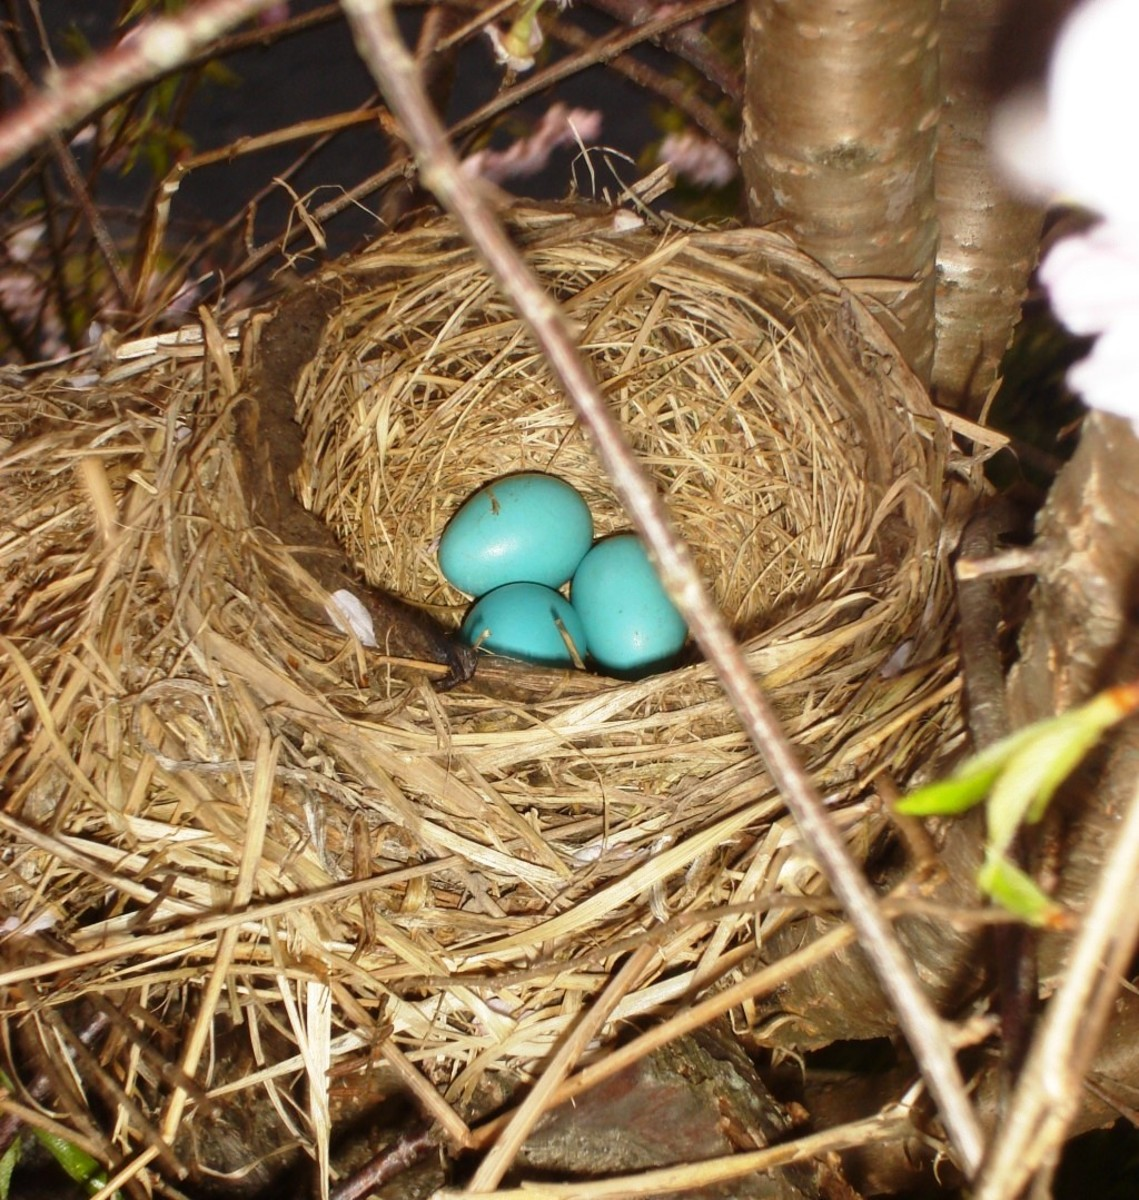 An American Robin's nest in spring.